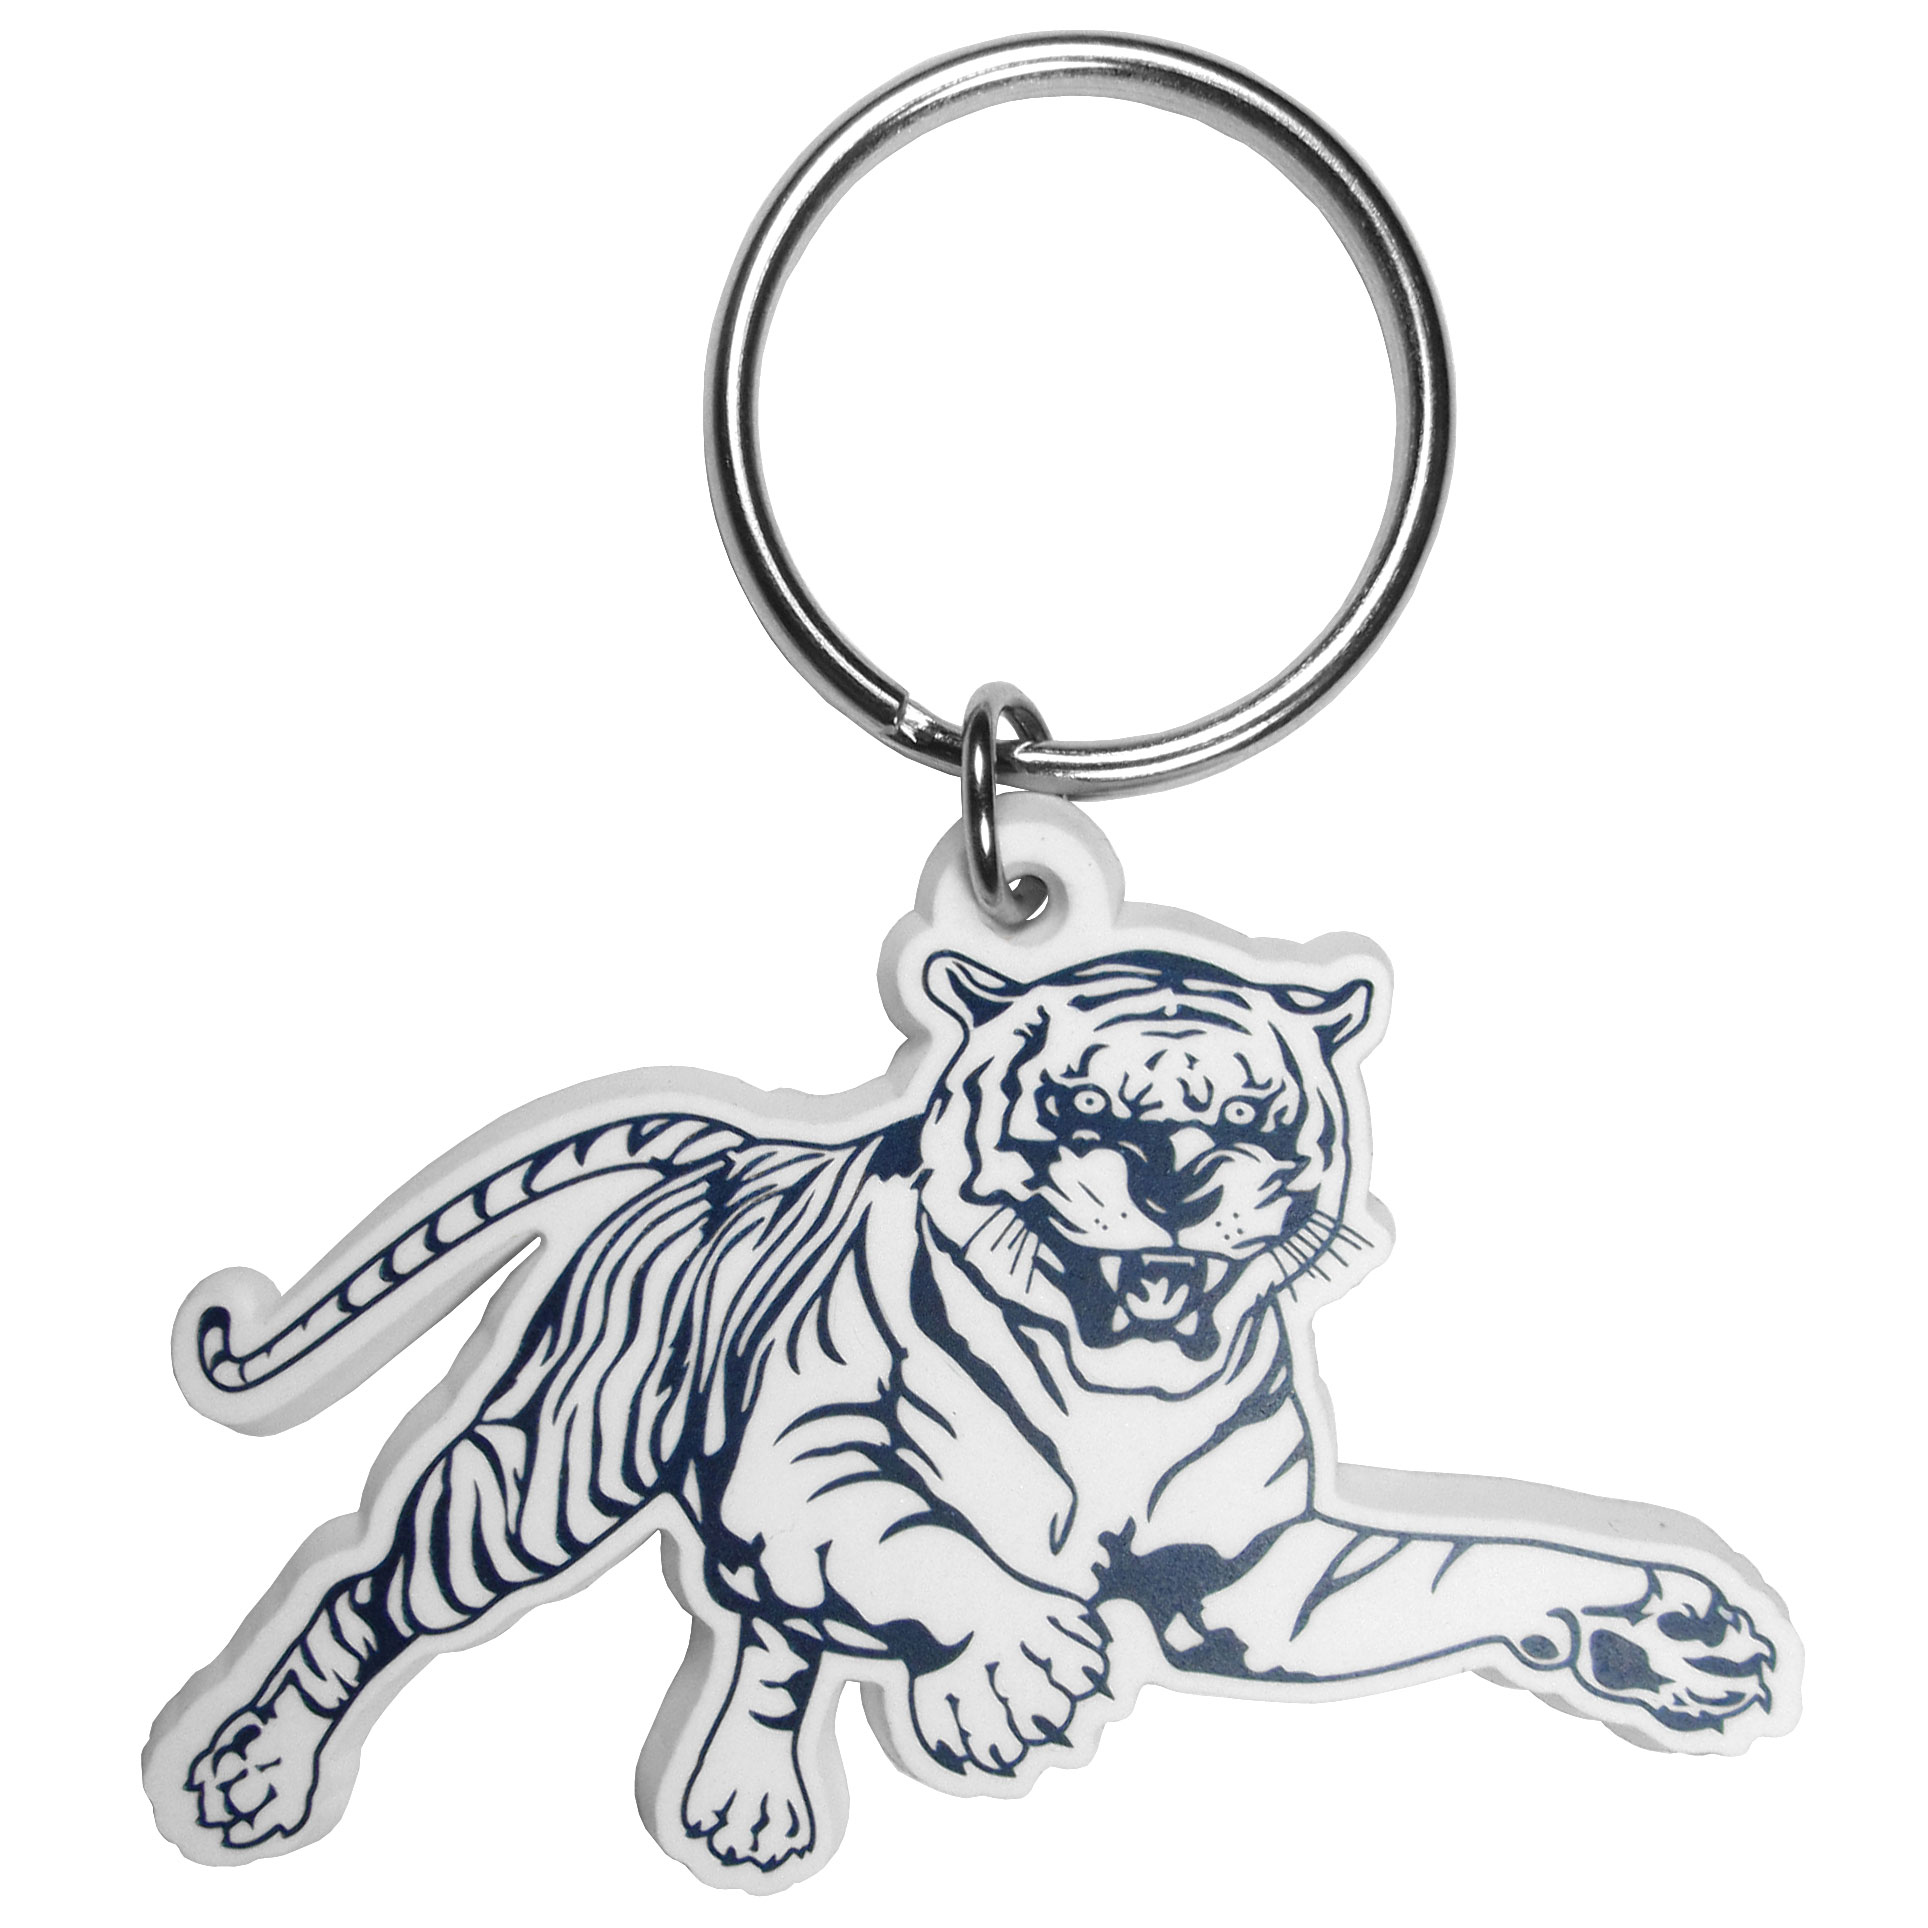 Jackson St. Tigers Flex Key Chain - Our fun, flexible Jackson St. Tigers key chains are made of a rubbery material that is layered to create a bright, textured logo.